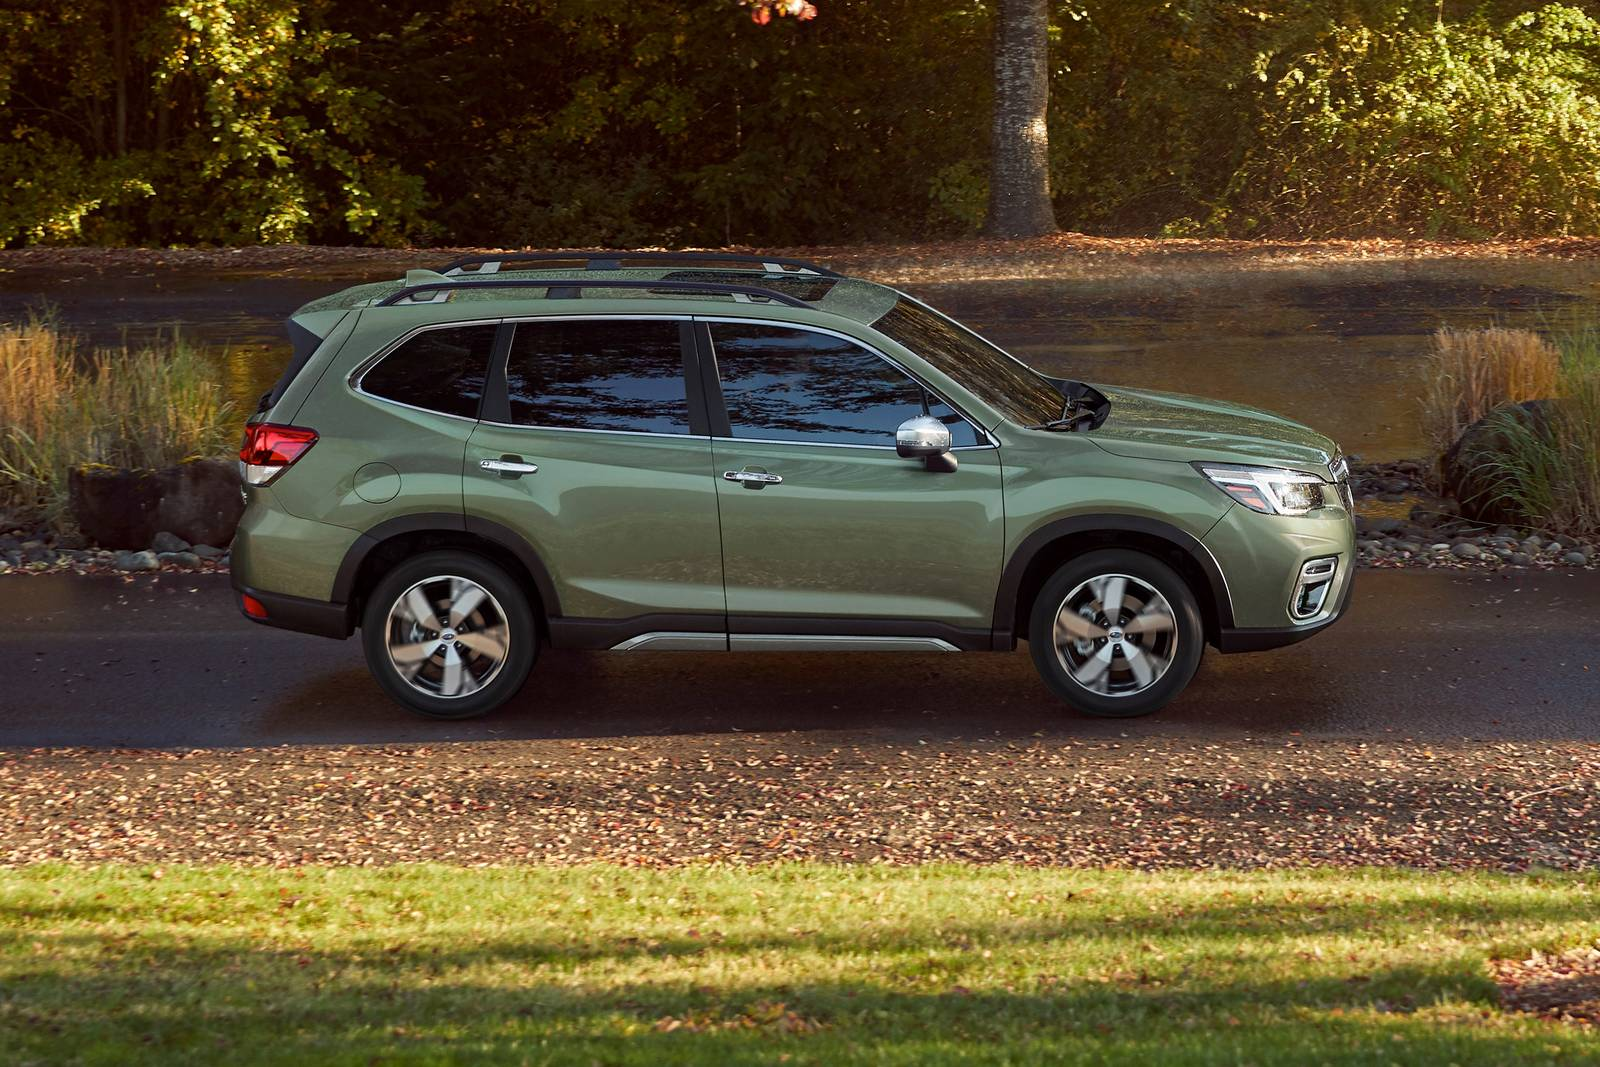 2019 Subaru Forester Touring Dimensions and Design